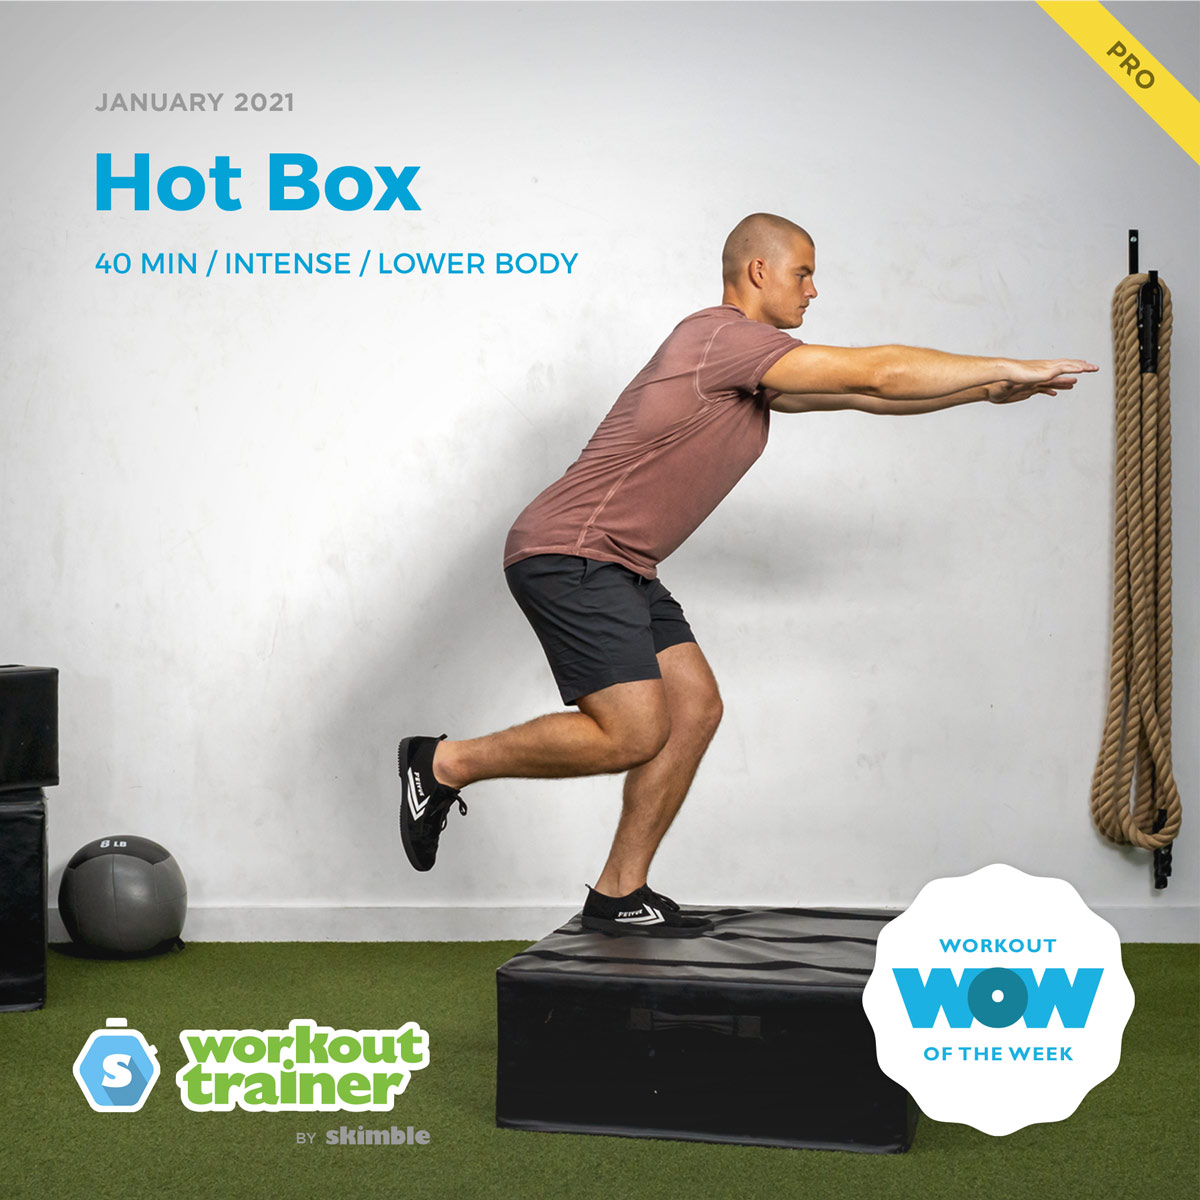 Male Personal Trainer demonstrating how to do Left Leg Box Jumps in a gym